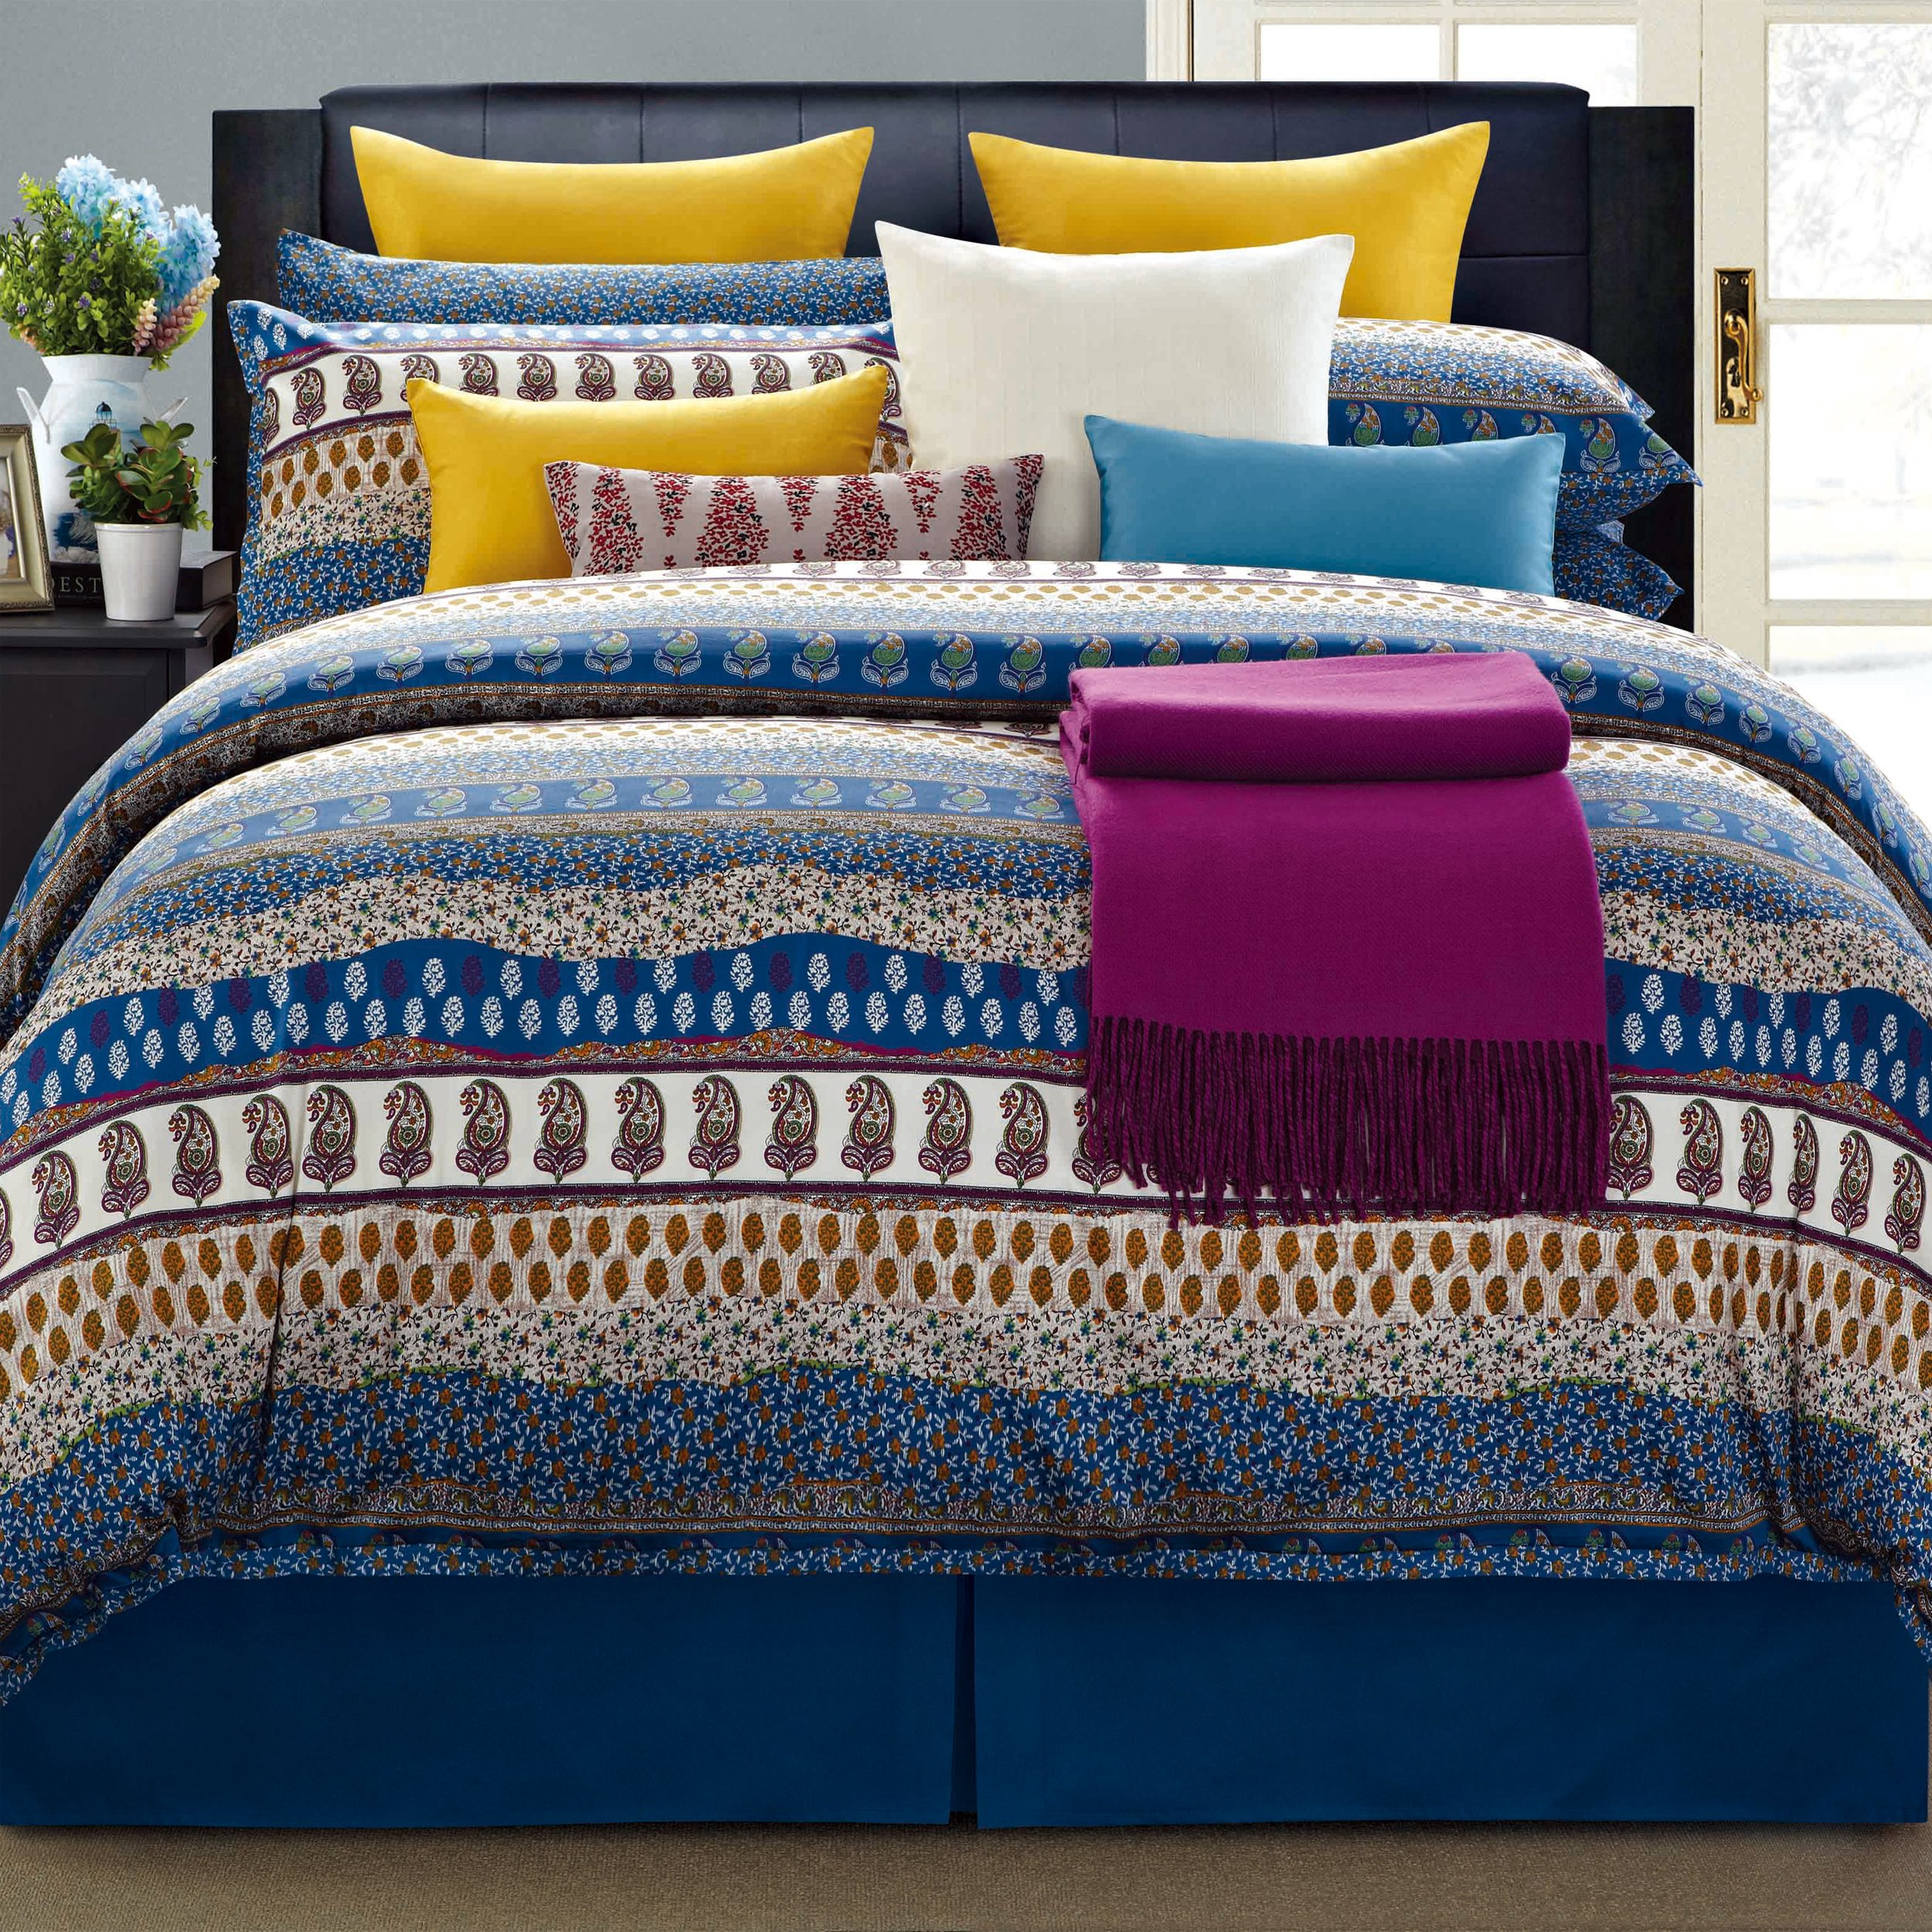 EverRouge 8-Piece Aladdin Cotton Bed in a Bag, California King